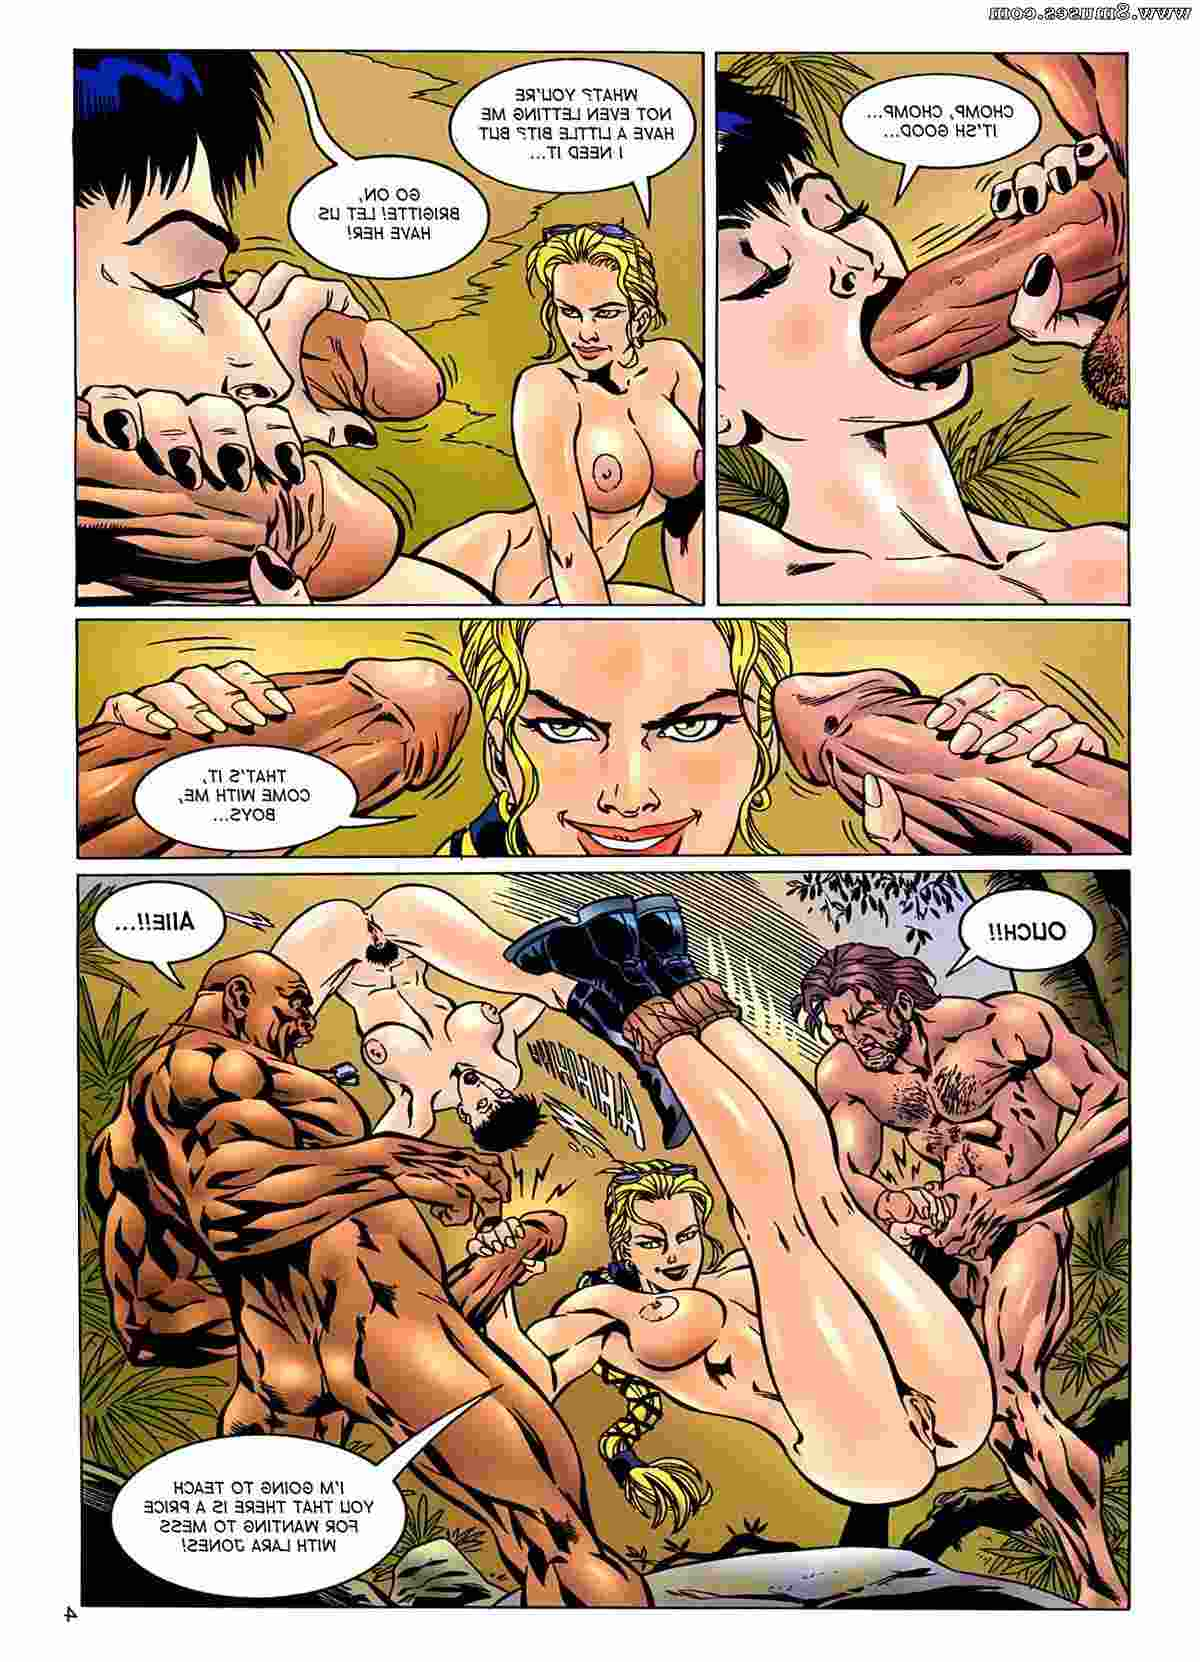 Various-Authors/Paco-Diaz/Lara-Jones-The-Final-Penetration Lara_Jones_-_The_Final_Penetration__8muses_-_Sex_and_Porn_Comics_4.jpg